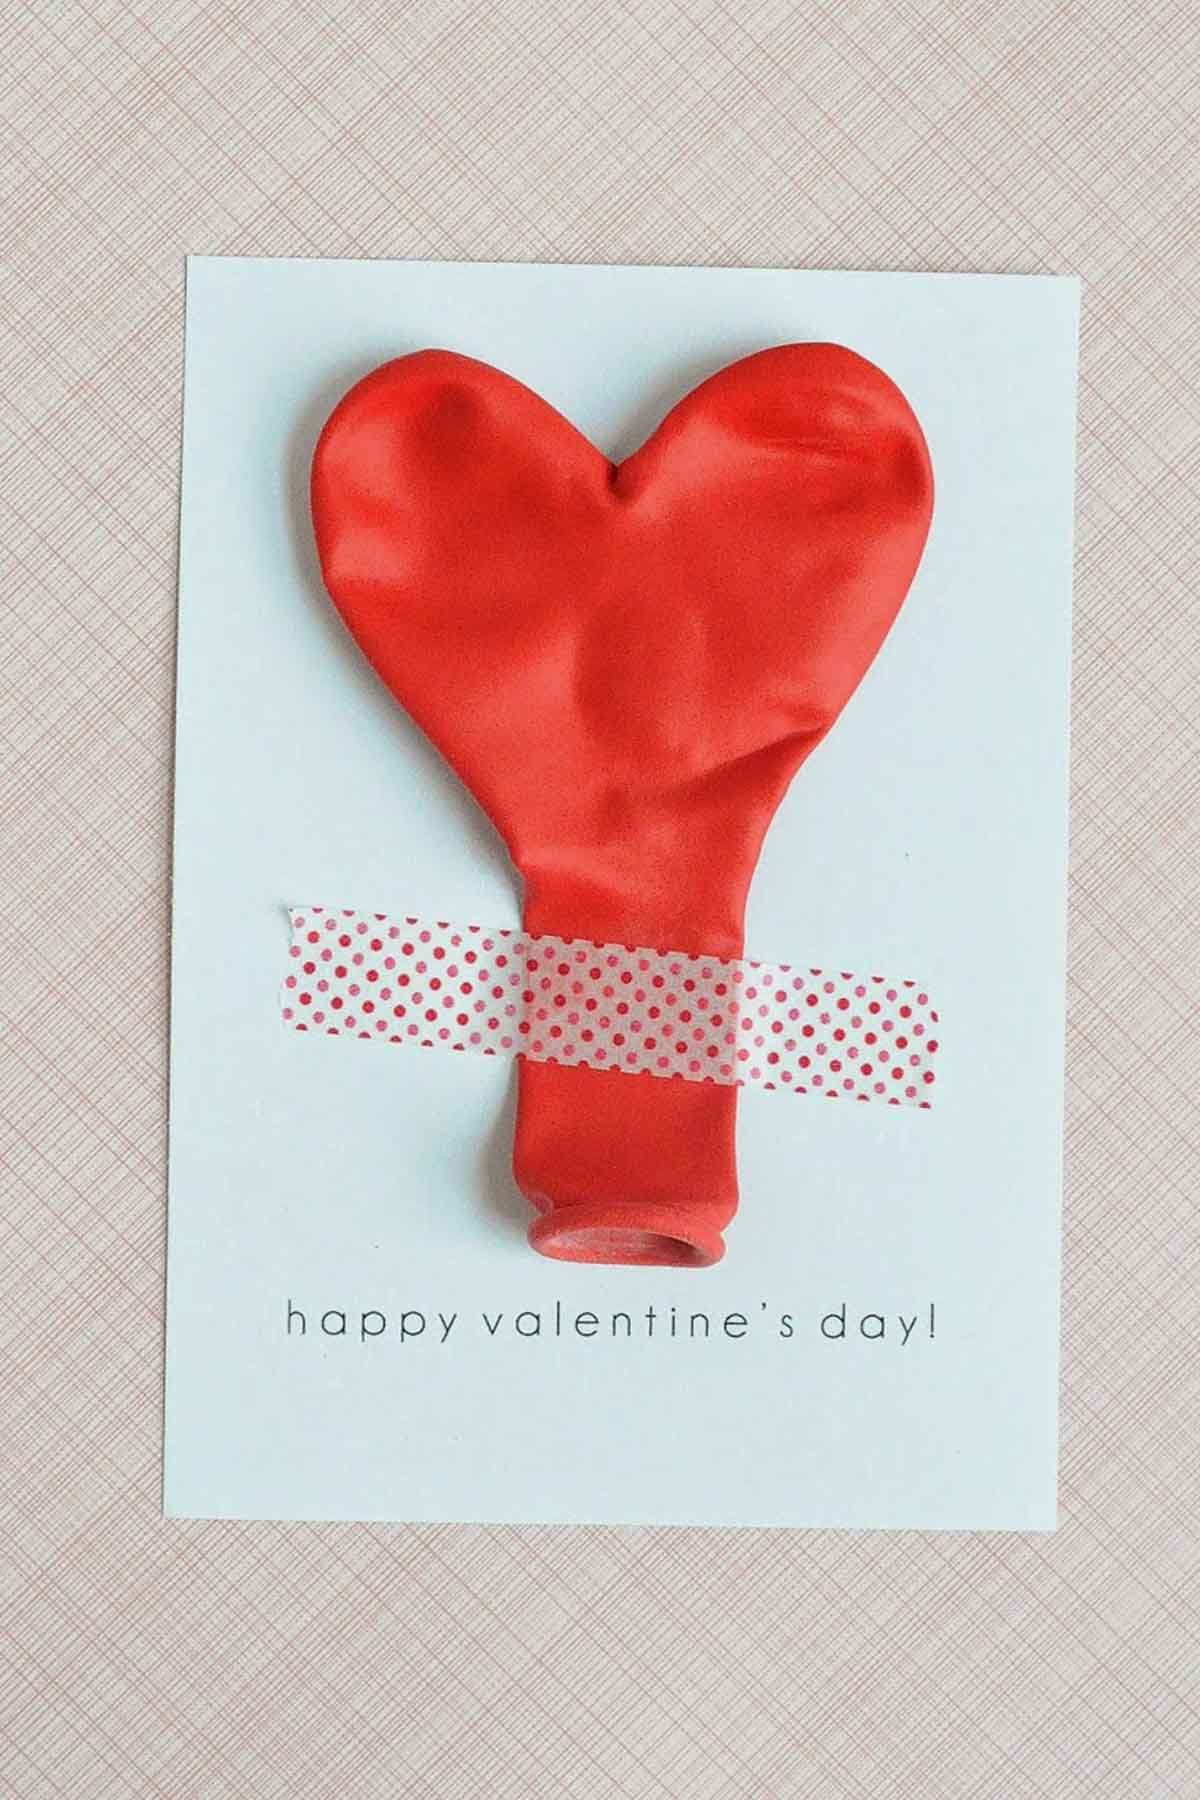 35 Cute Diy Valentine S Day Cards Homemade Card Ideas For